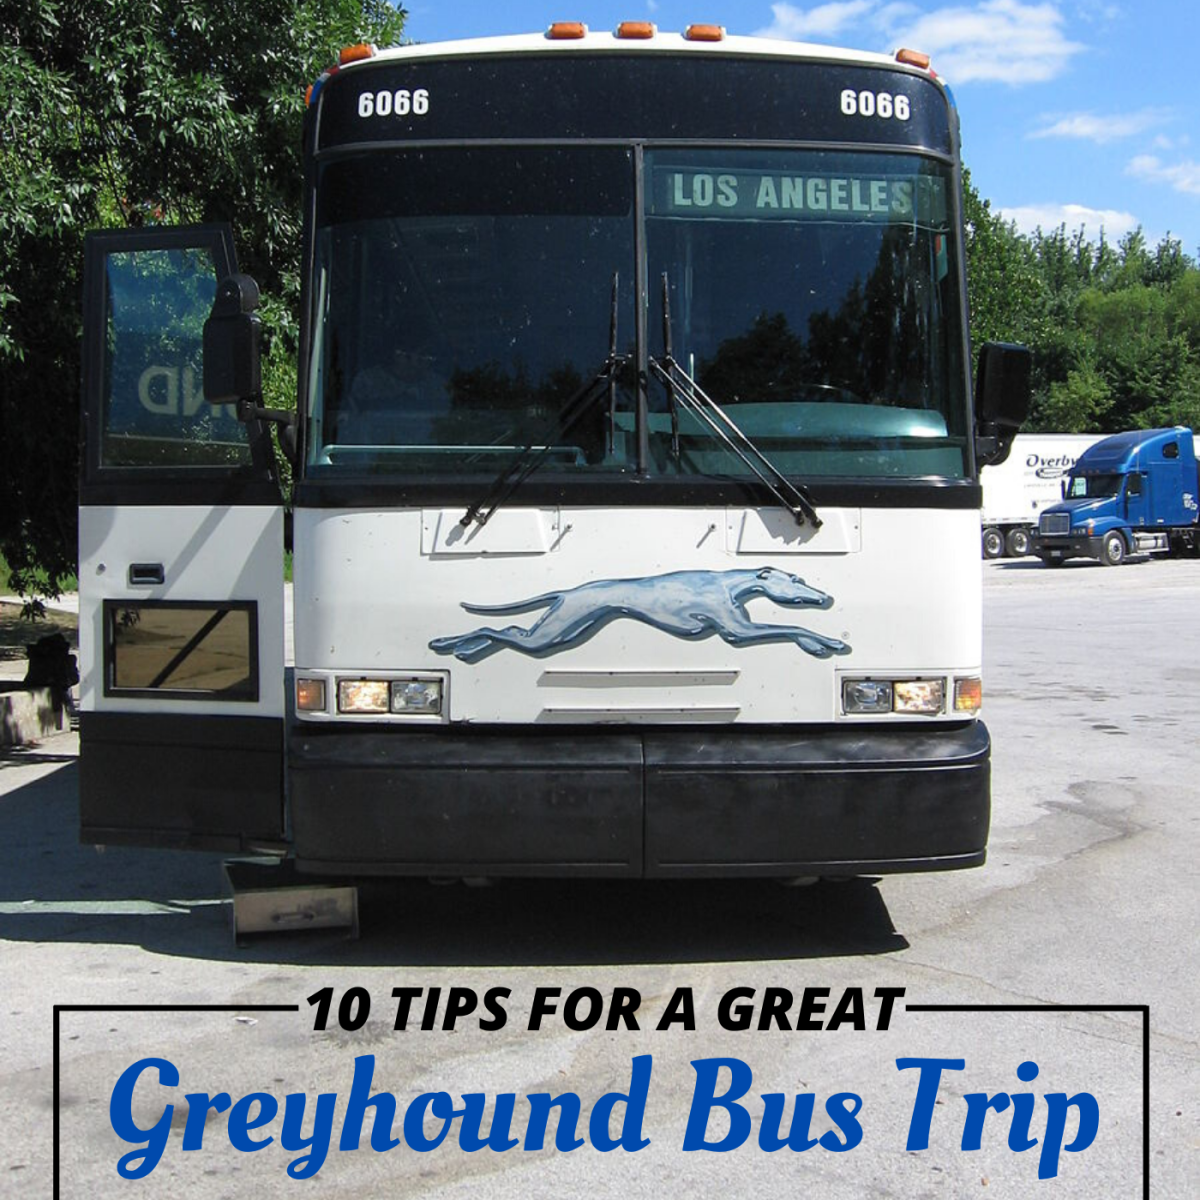 10 Tips for Your First Greyhound Bus Trip